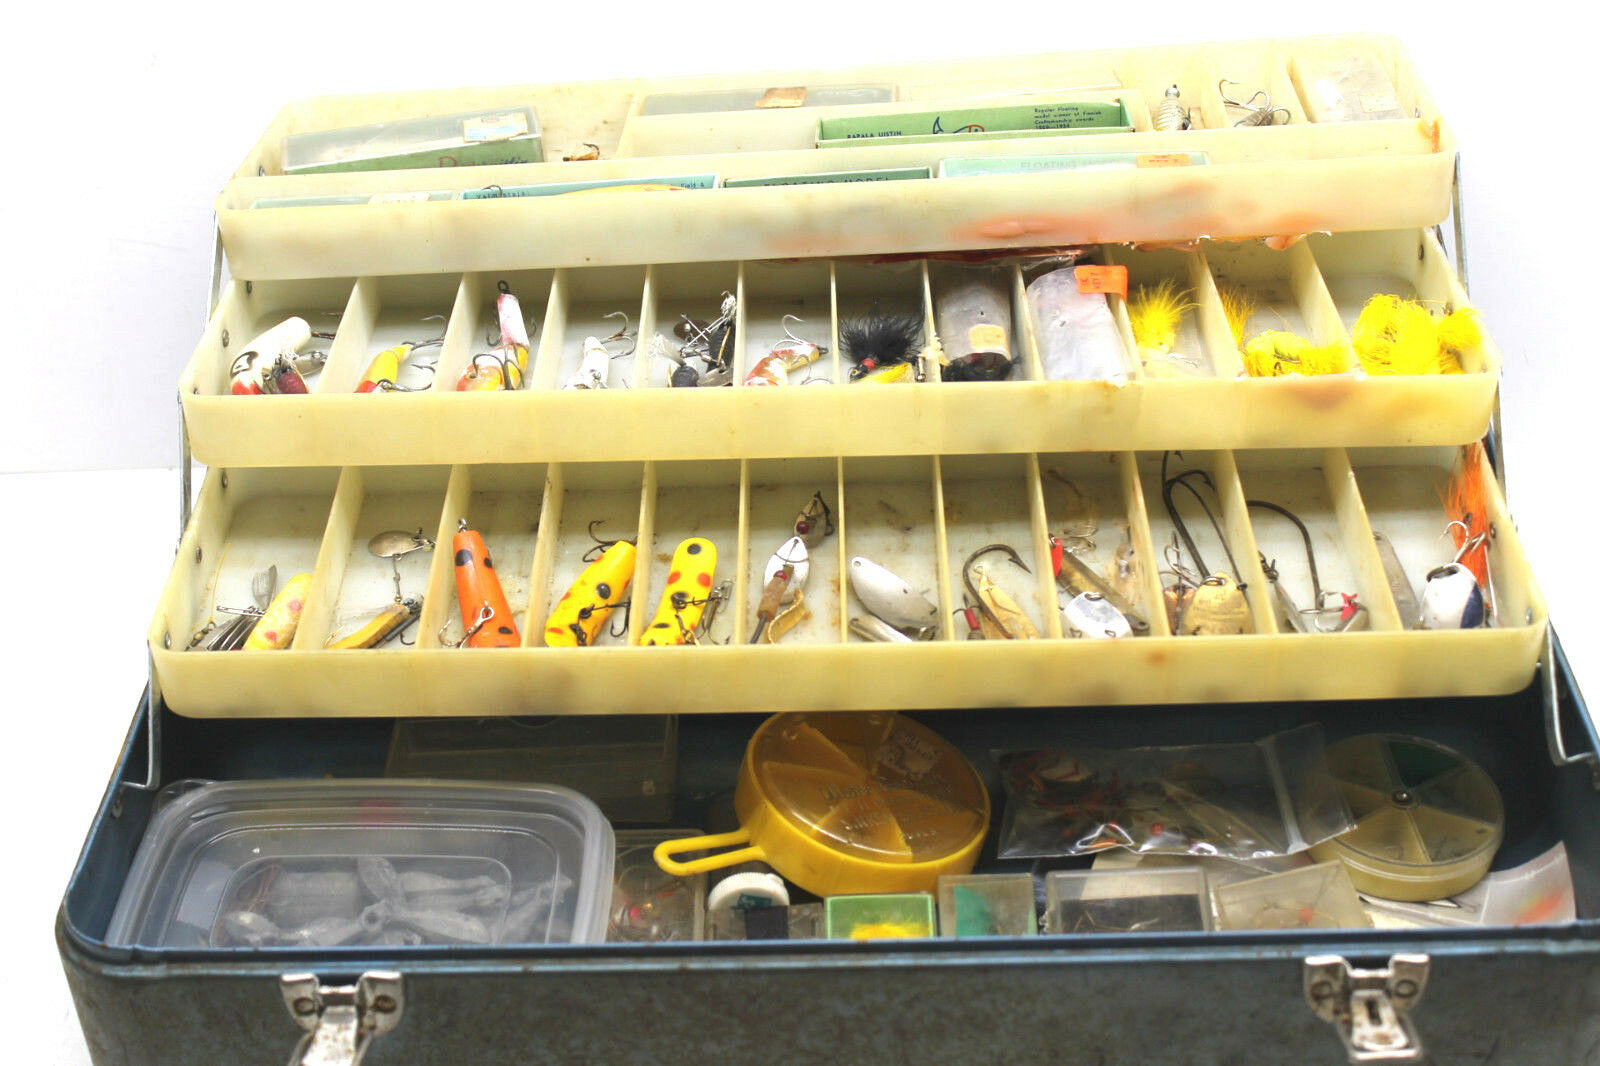 100+ Rare Vintage Fishing Box Old Pal Rapala Compac  Red Eye Lures Jigs Etc  deals sale